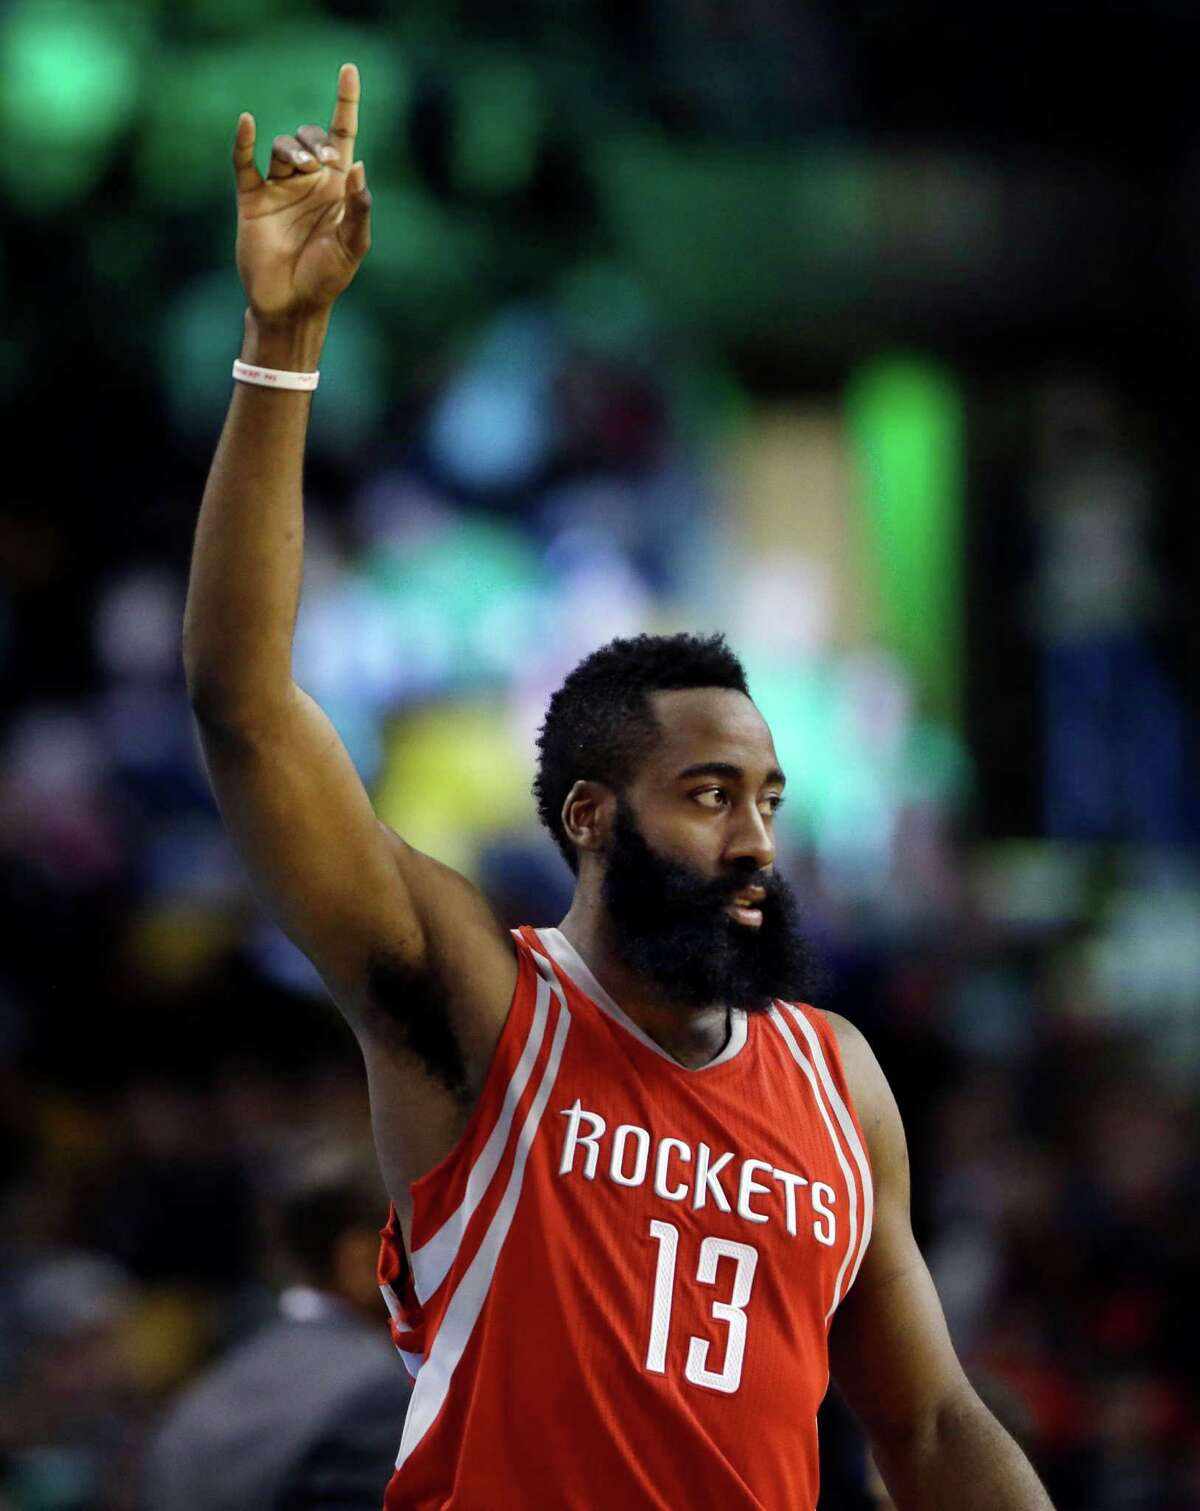 Houston Rockets guard James Harden (13) gestures in the fourth quarter of an NBA basketball game against the Boston Celtics, Friday, March 11, 2016, in Boston. Harden scored 32 points to lead the Rockets to a 102-98 victory over the Celtics.